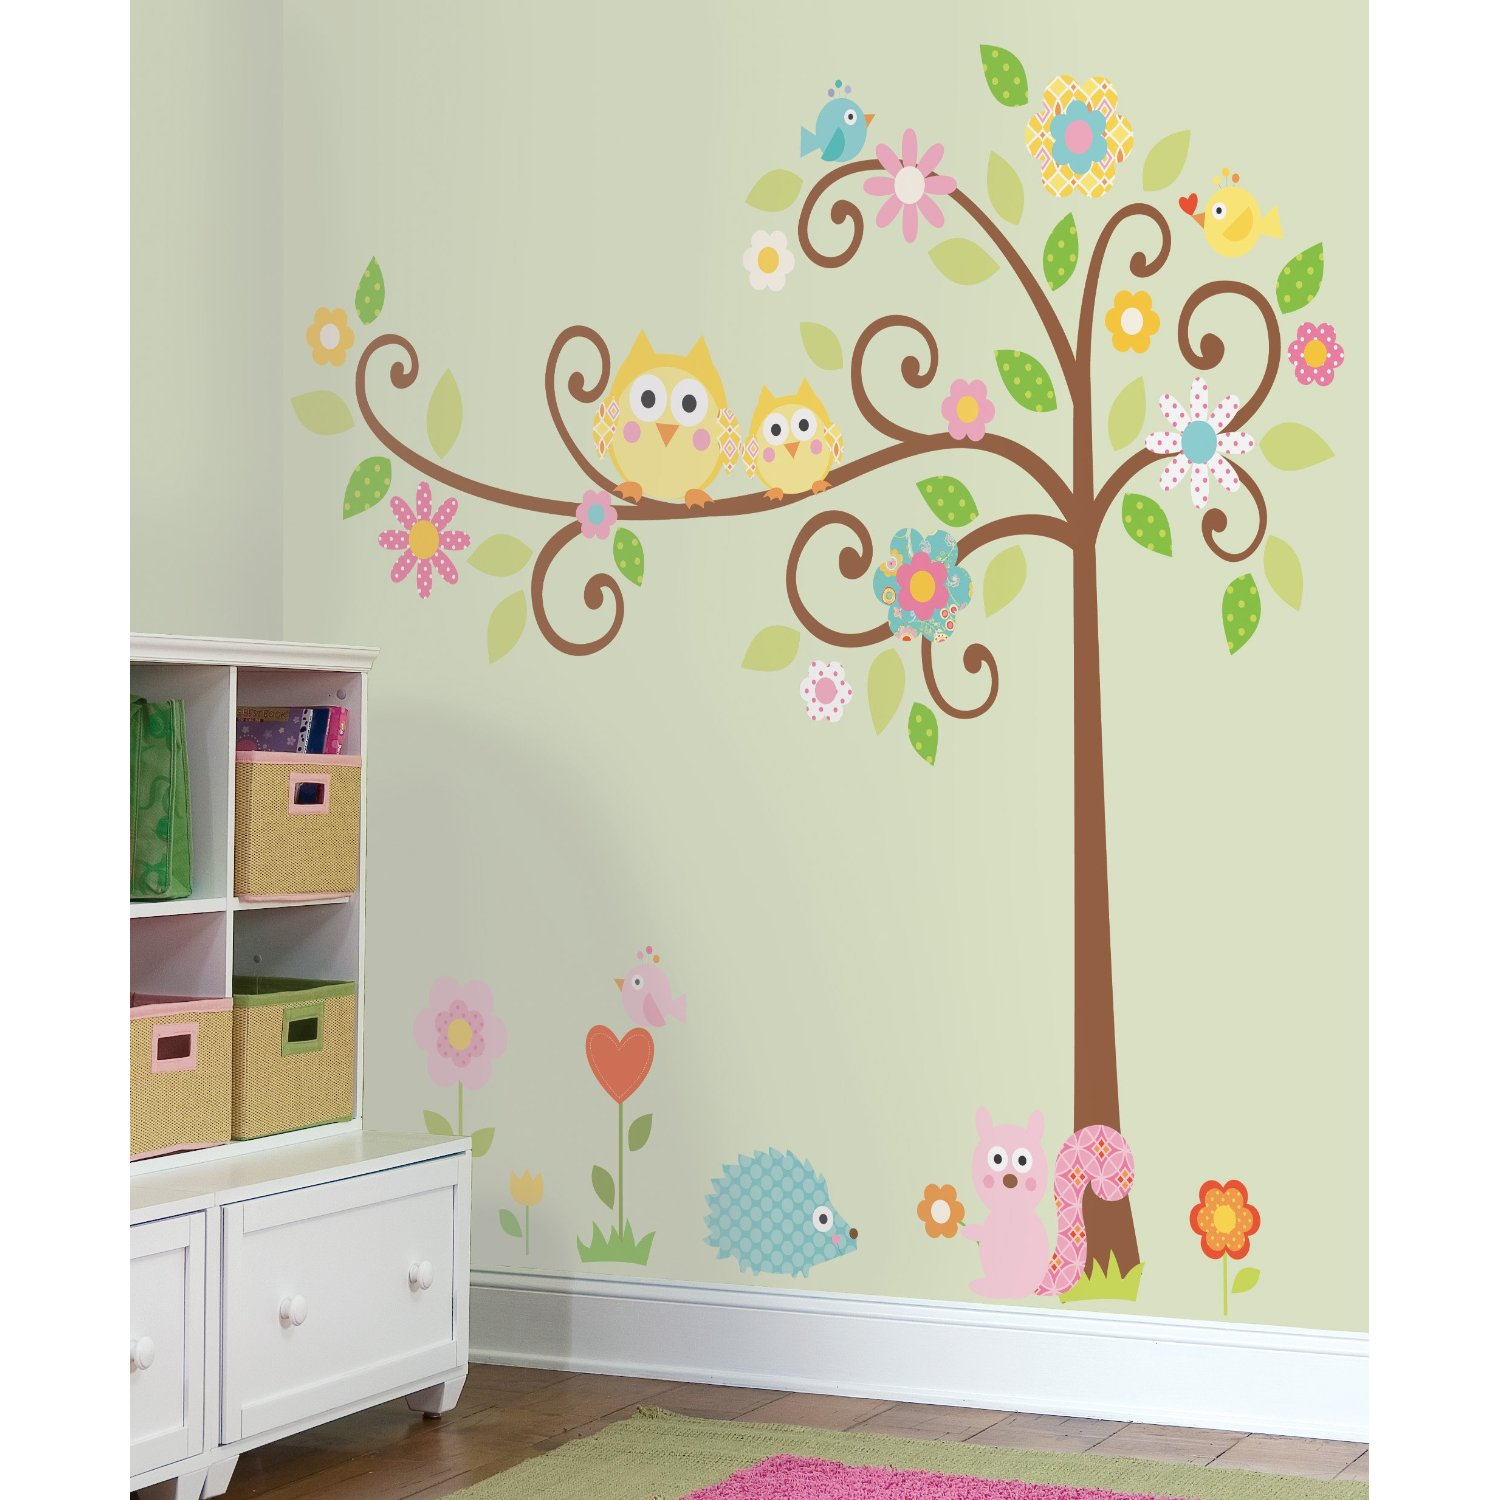 How To Paint A Tree Mural Off The Wall - Diy wall decor birds